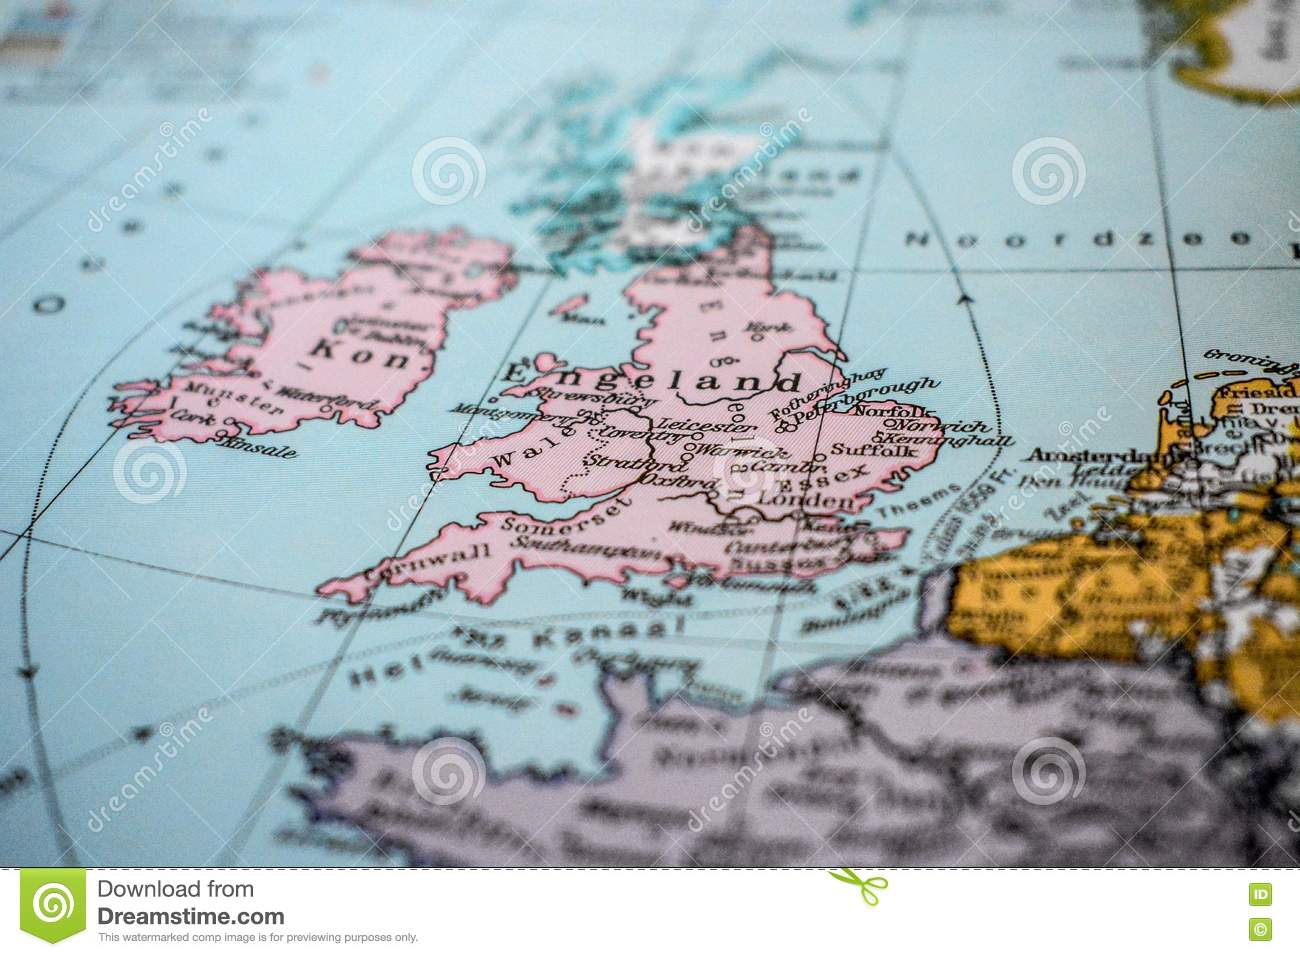 Map Of England Europe.Map Of England Stock Image Image Of Europe Leicester 78066125